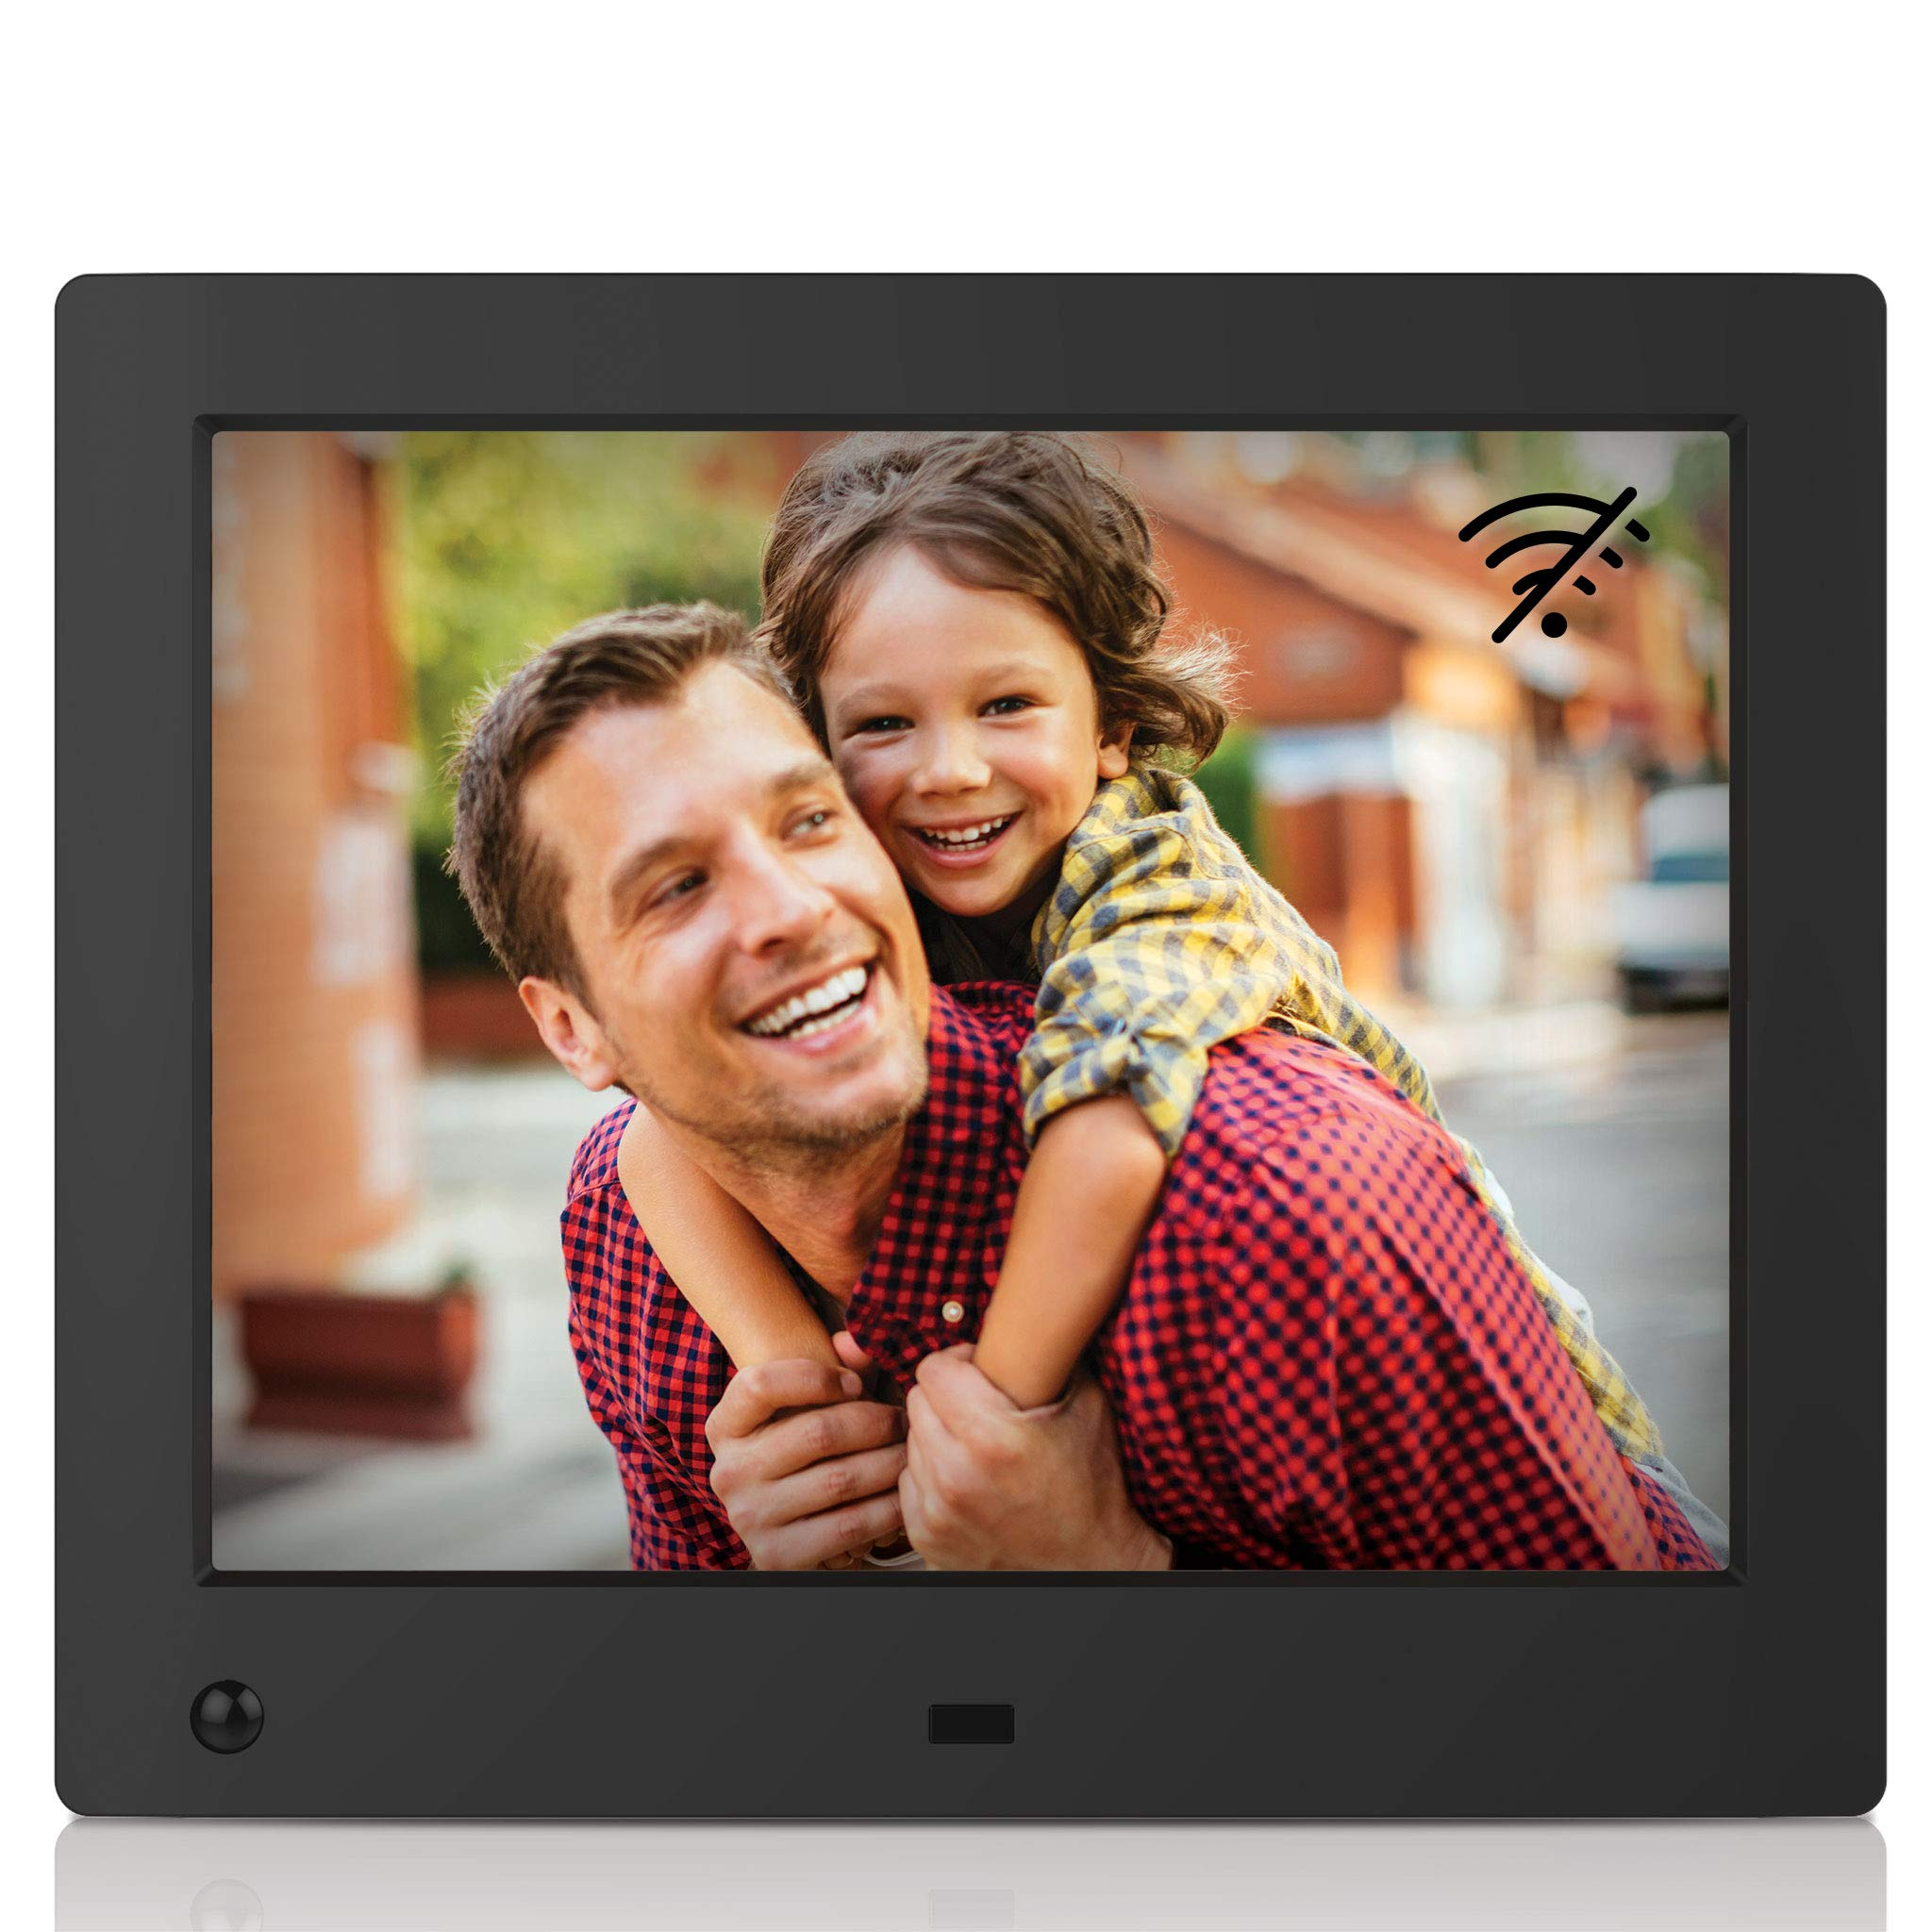 NIX Advance 8-Inch Digital Photo Frame X08E (Non-WiFi) - Digital Picture Frame with 1024x768 XGA IPS Display, Motion Sensor, Photo Auto-Rotate, USB and SD Card Slots and Remote Control by NIX